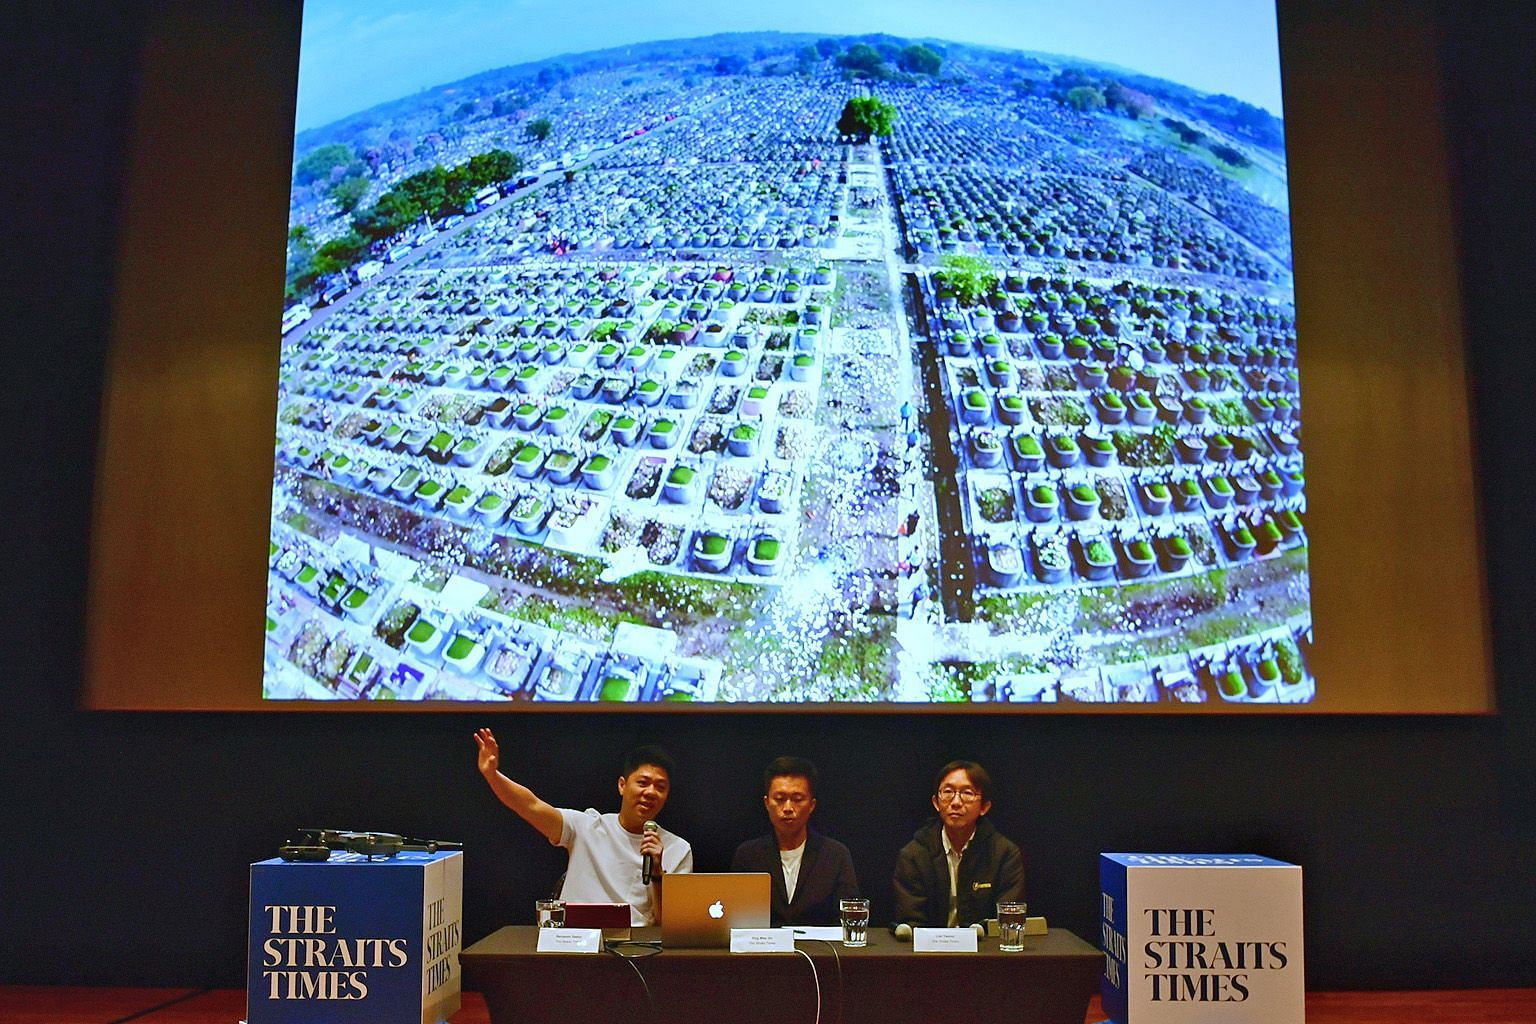 Straits Times photojournalists (from left) Benjamin Seetor, Ong Wee Jin and Lim Yaohui giving a talk on drone photography at the National Museum of Singapore yesterday.